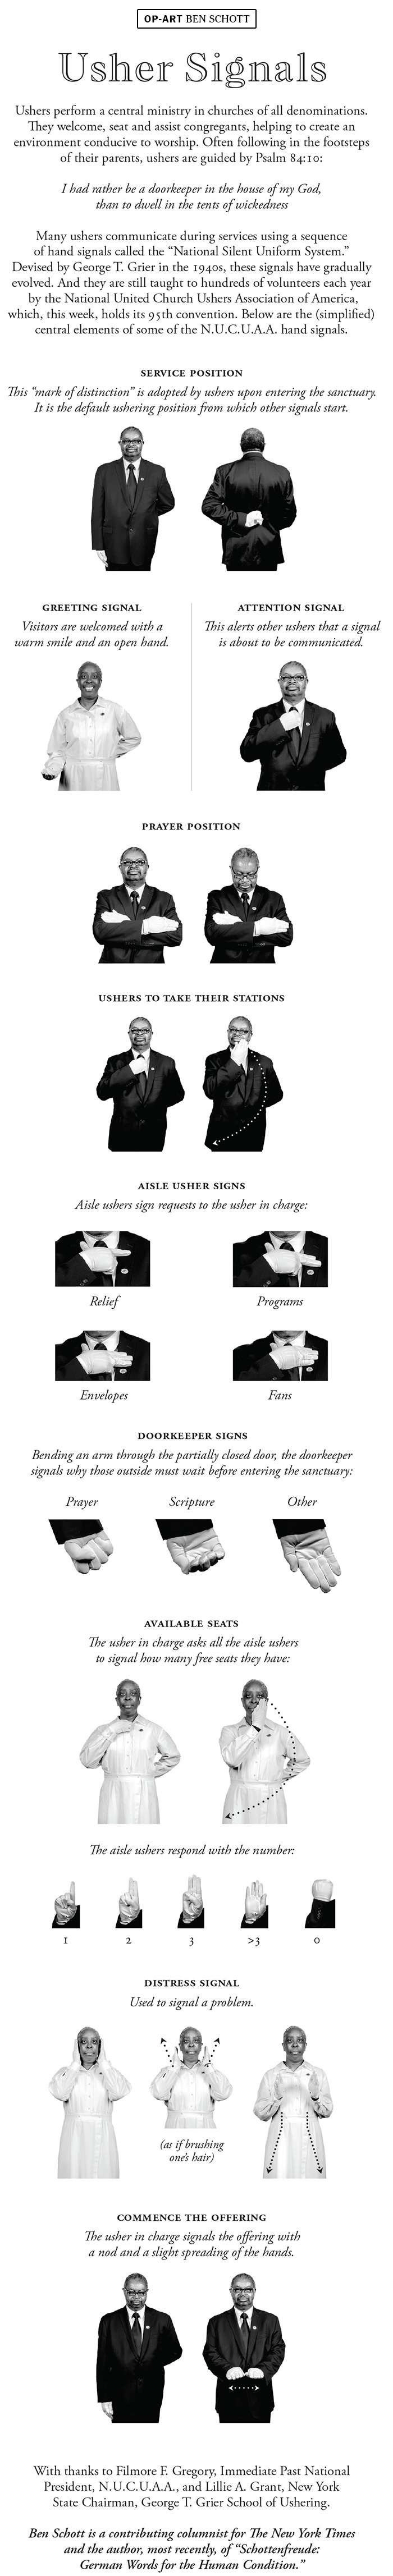 Opinion   Usher Signals - The New York Times - Free Printable Church Usher Hand Signals